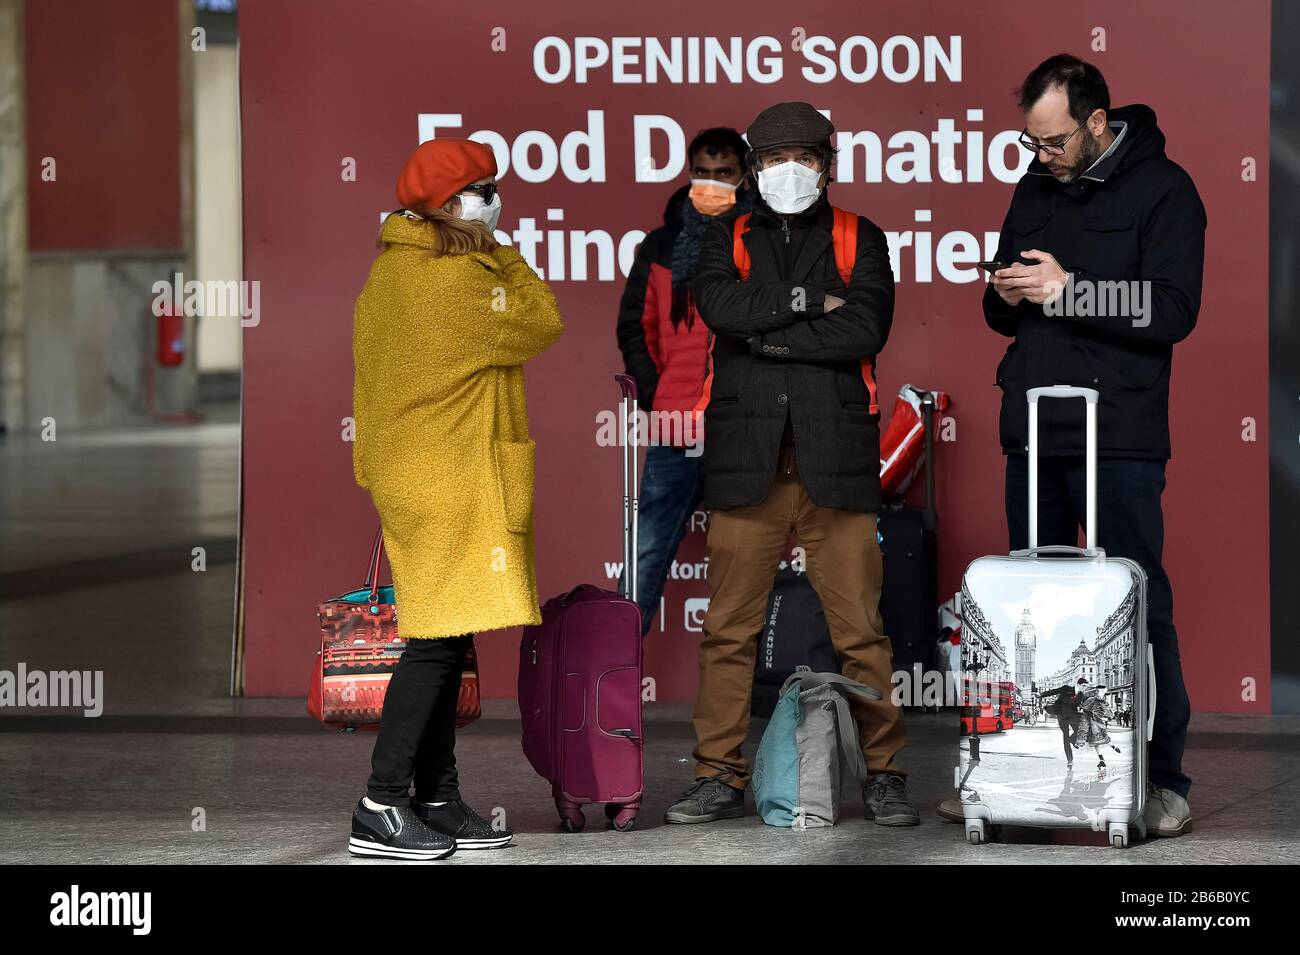 Turin, Italy. 09th Mar, 2020. TURIN, ITALY - March 09, 2020: Passengers with their bags wait in Turin Porta Nuova train station. The Italian government imposed a virtual lockdown on the north of the country as part of measures to stop the spread of the coronavirus COVID-19 outbreak in Italy. (Photo by Nicolò Campo/Sipa USA) Credit: Sipa USA/Alamy Live News Stock Photo